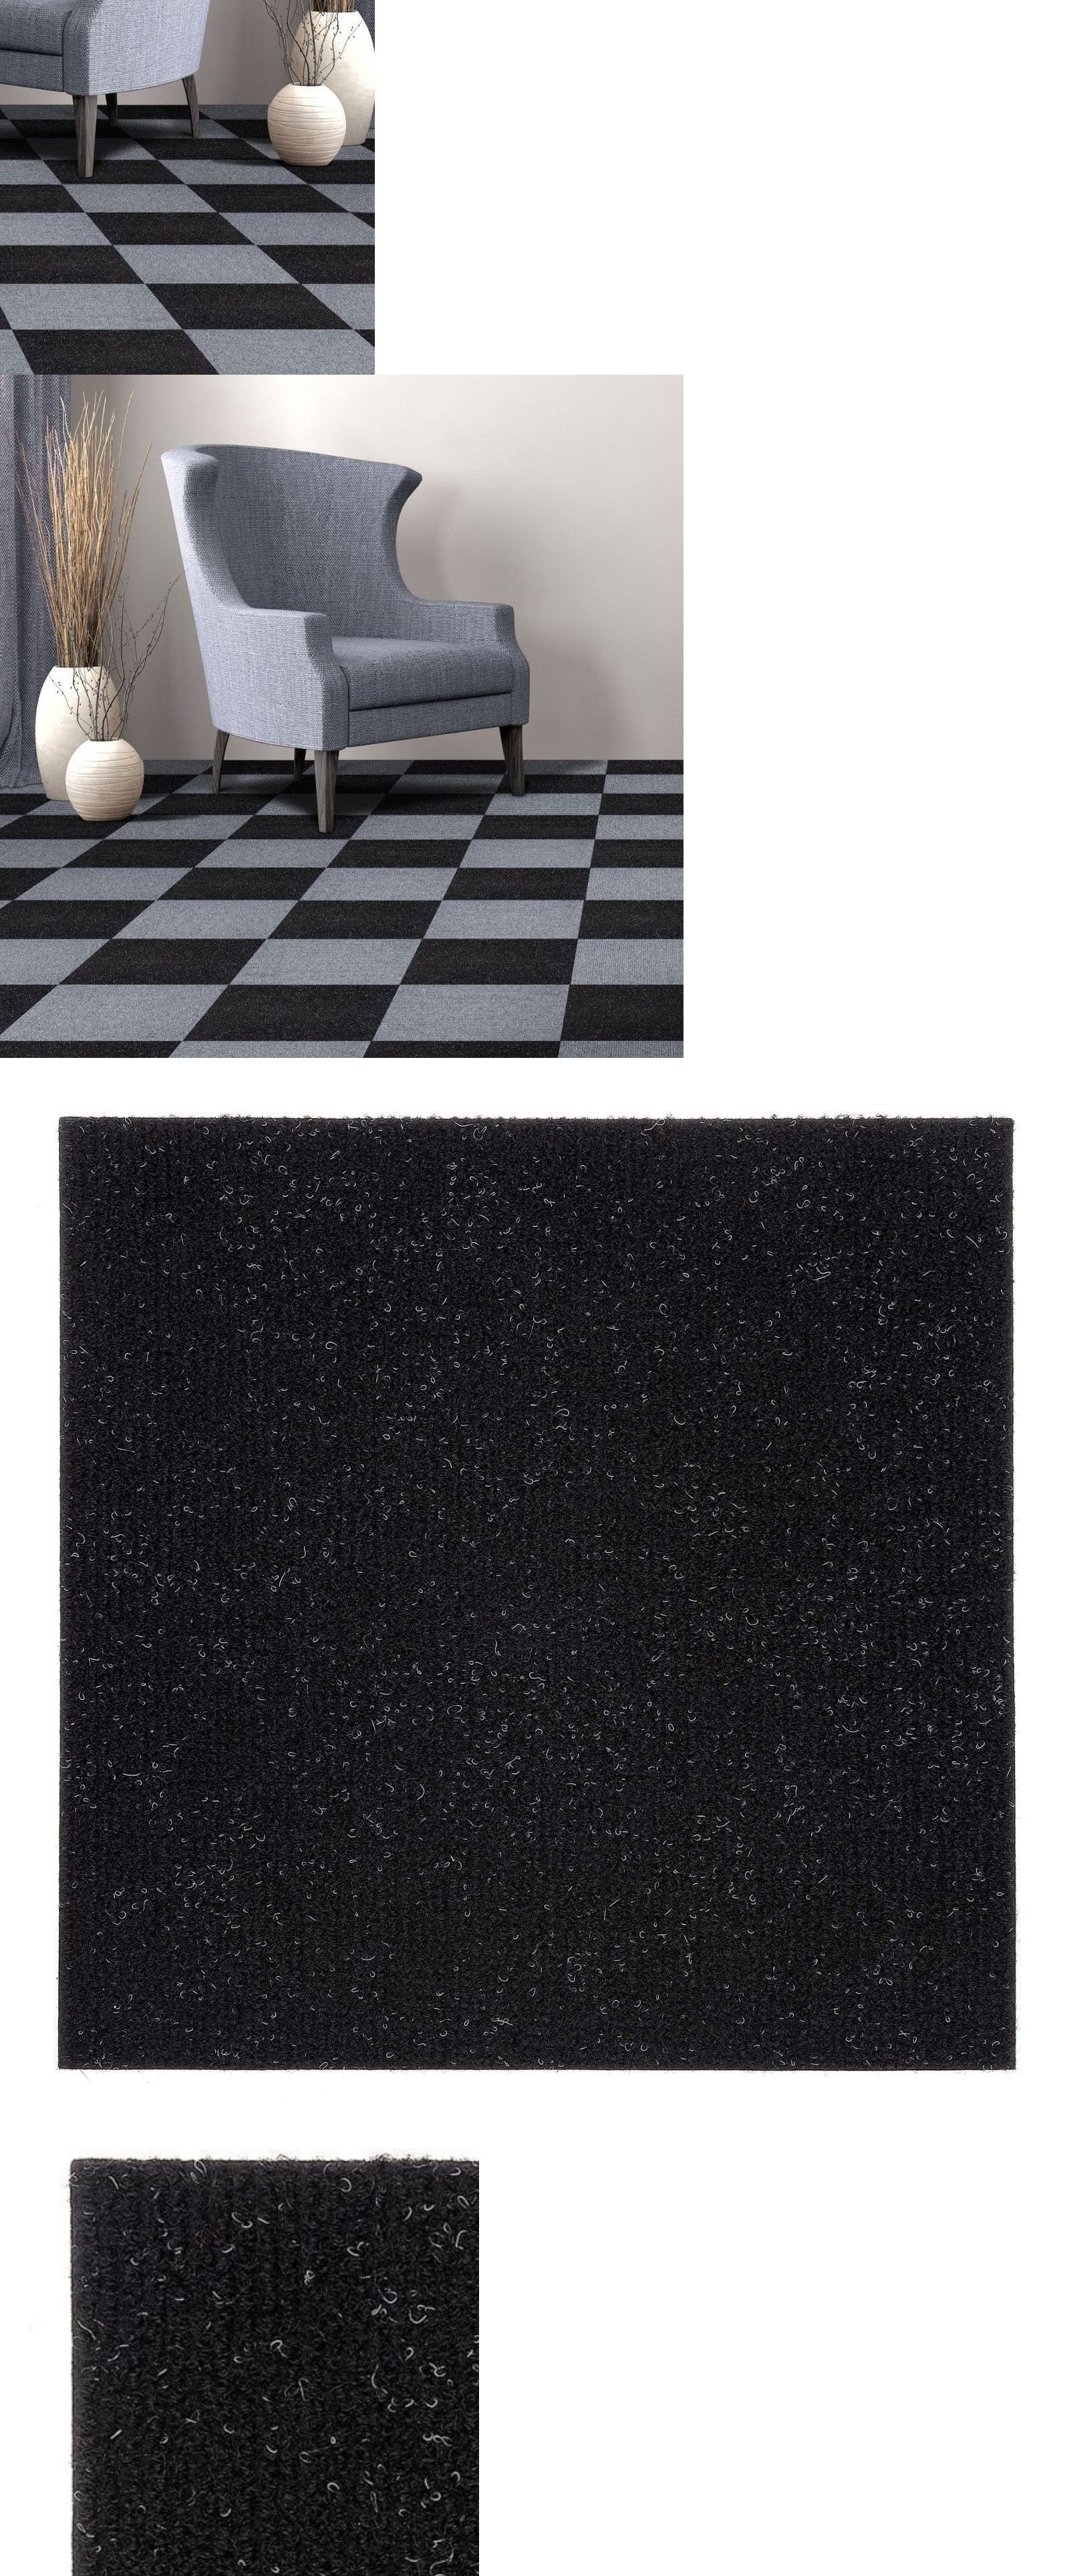 Details About Carpet Tiles Peel And Stick Self Adhesive Squares